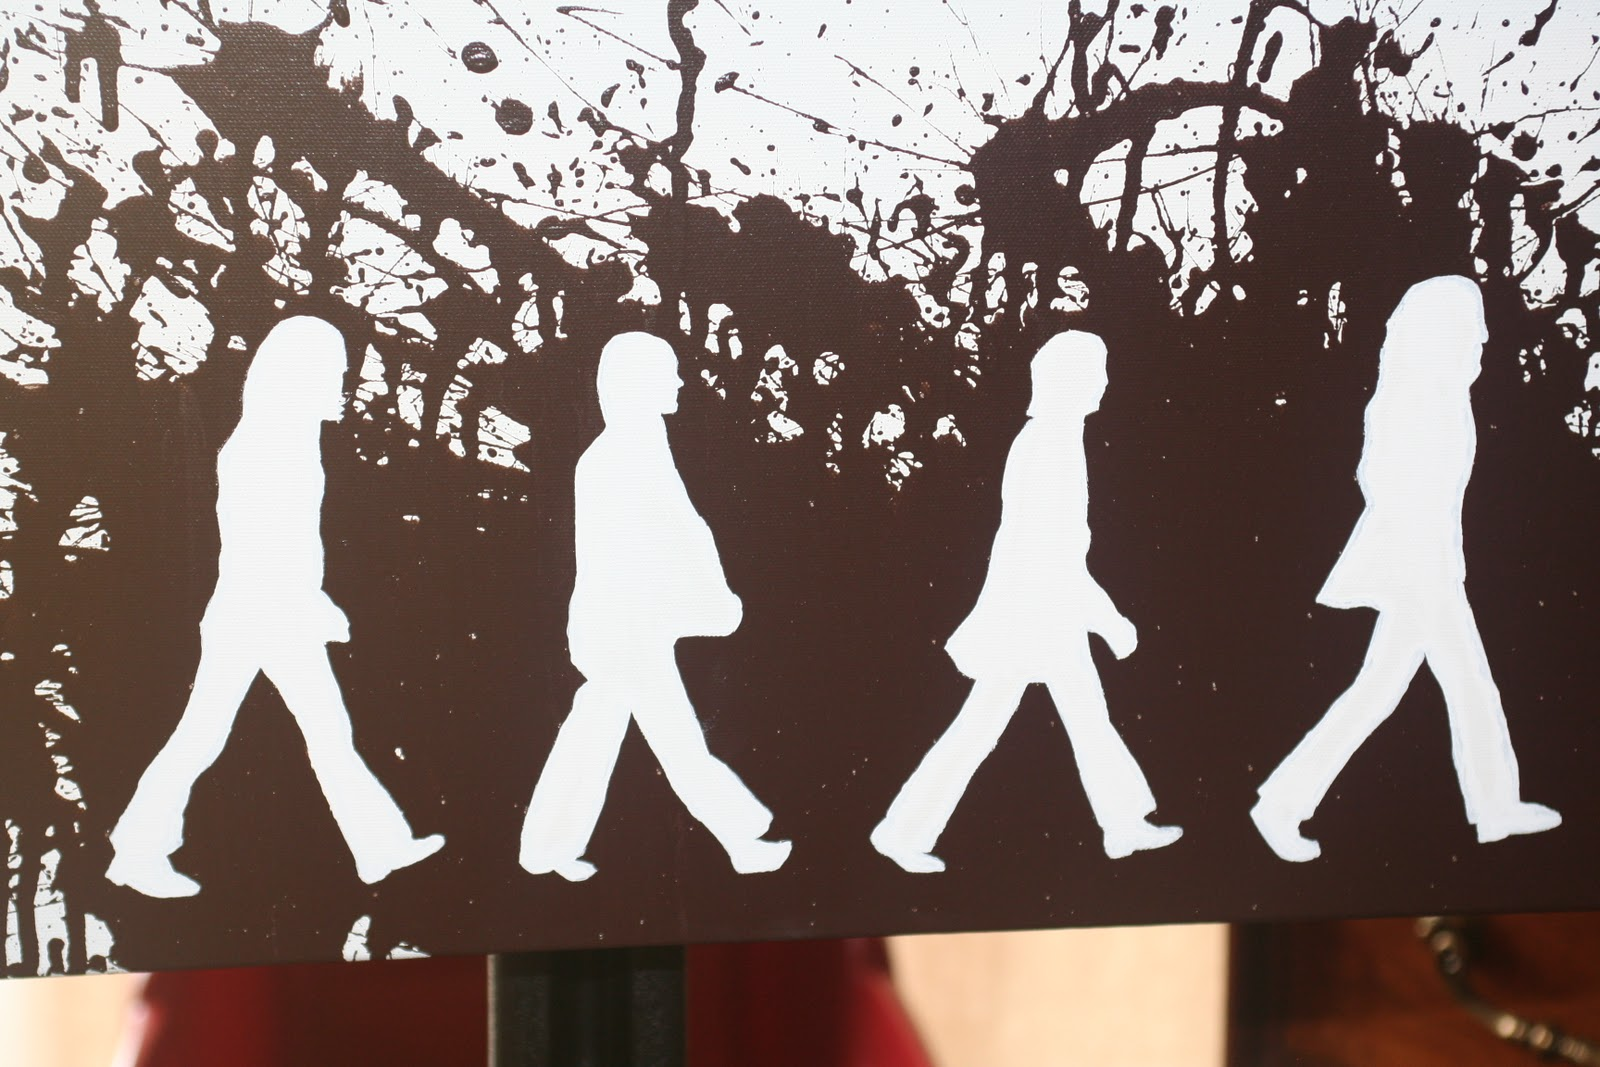 Abbey Road Silhouette Image